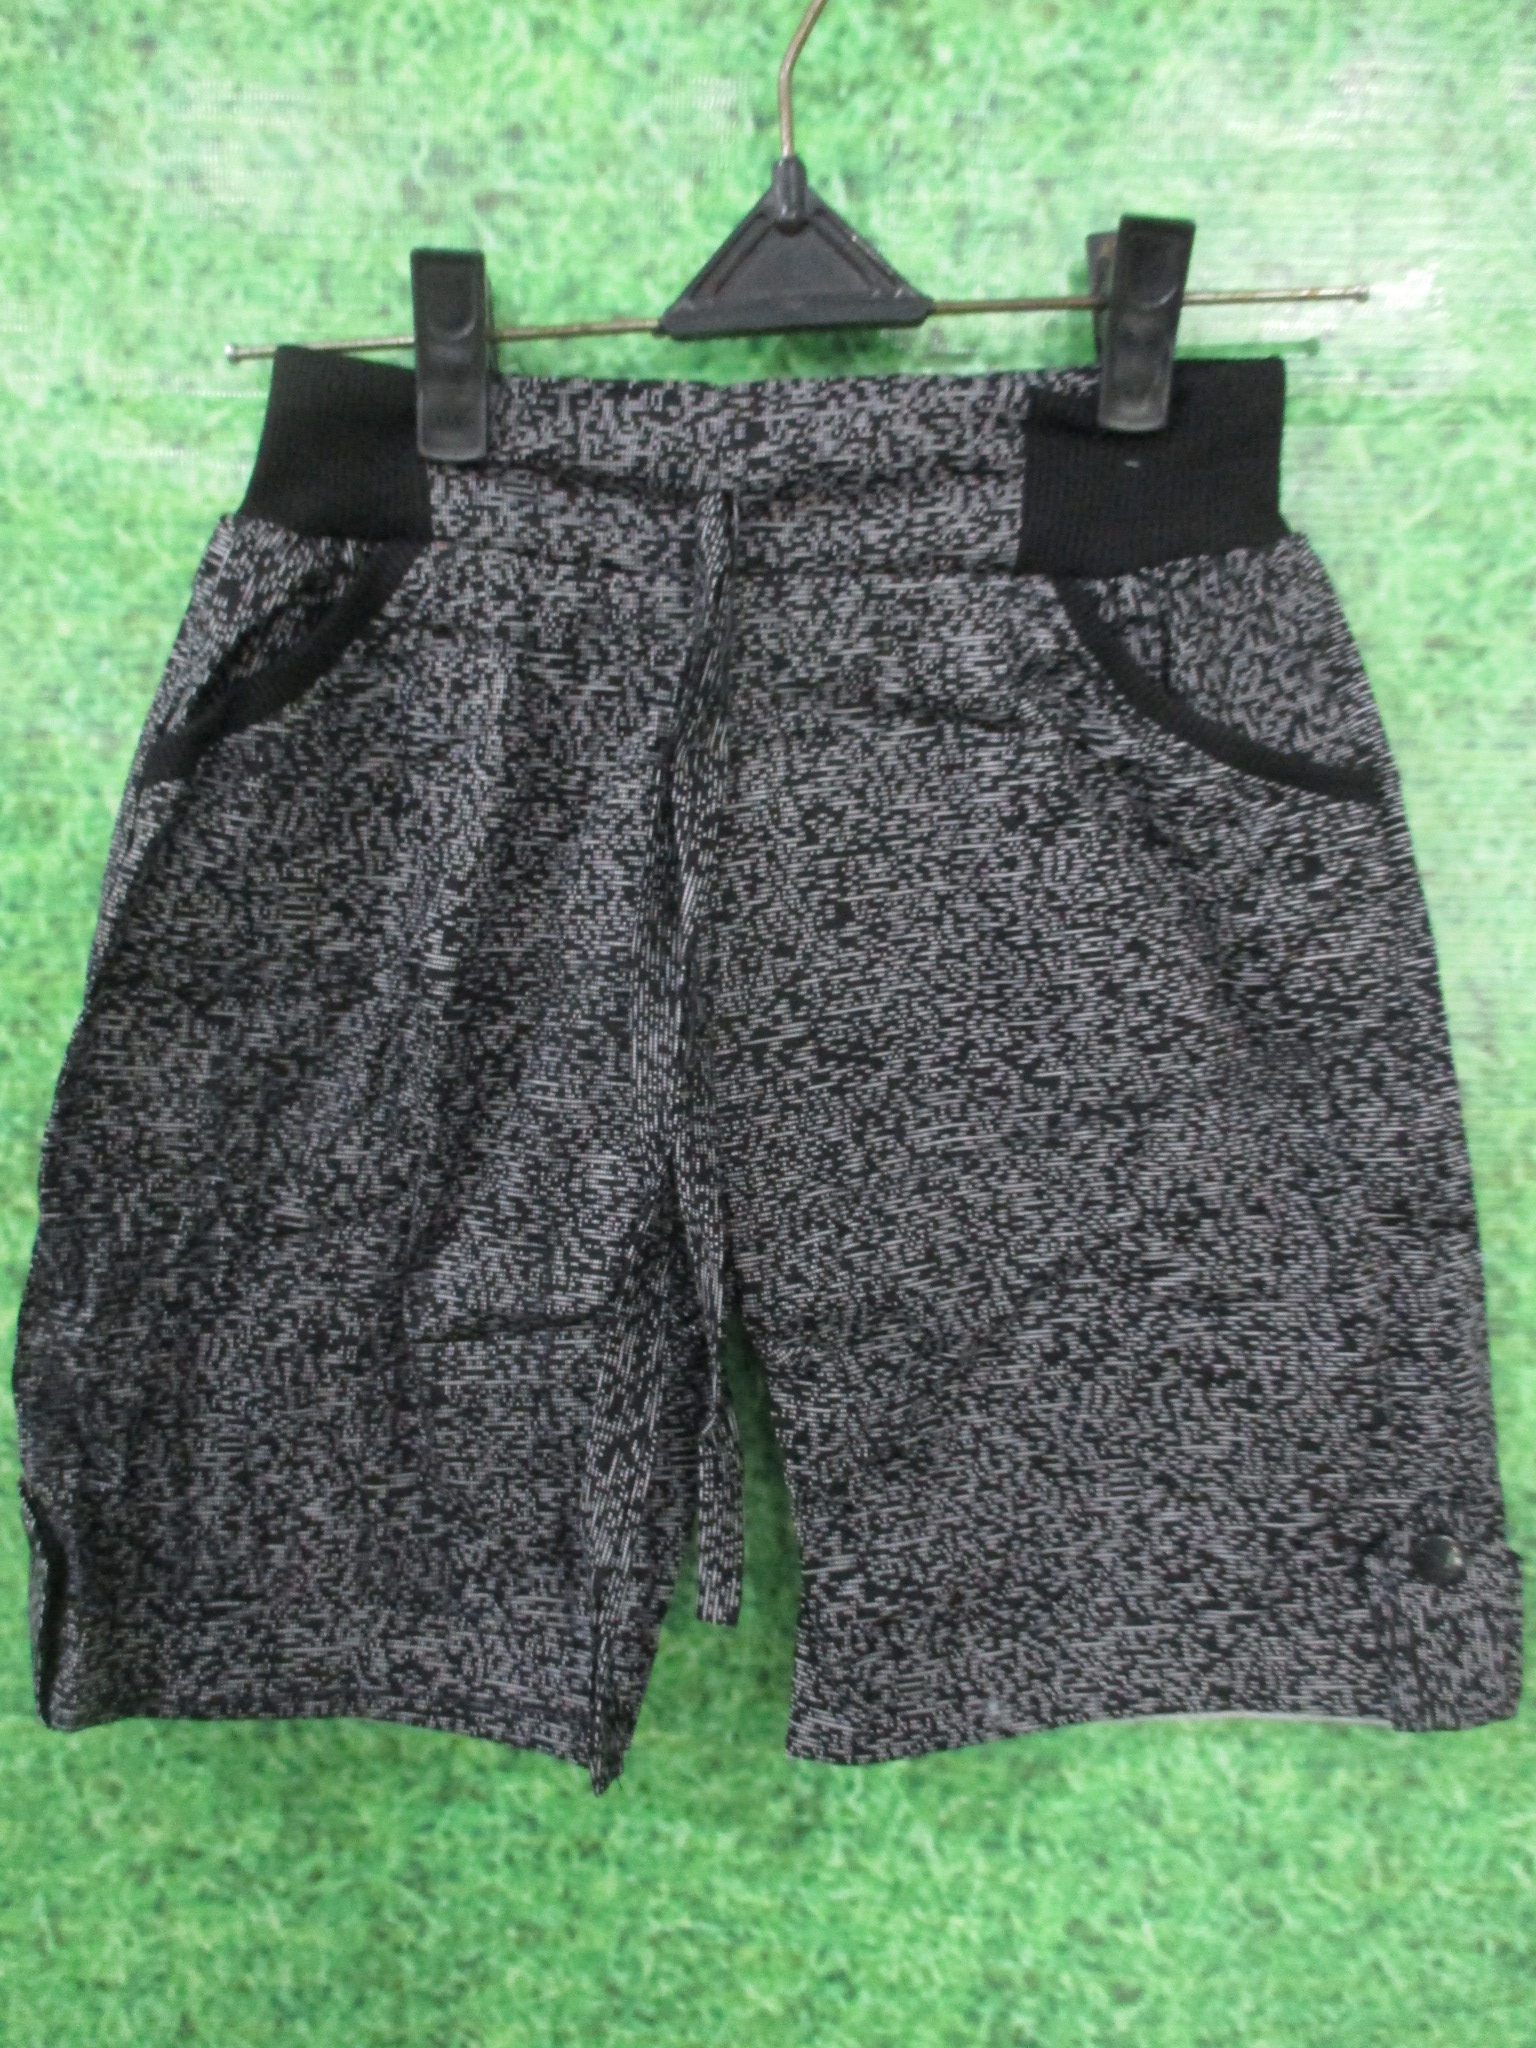 jual hot pants wanita new model